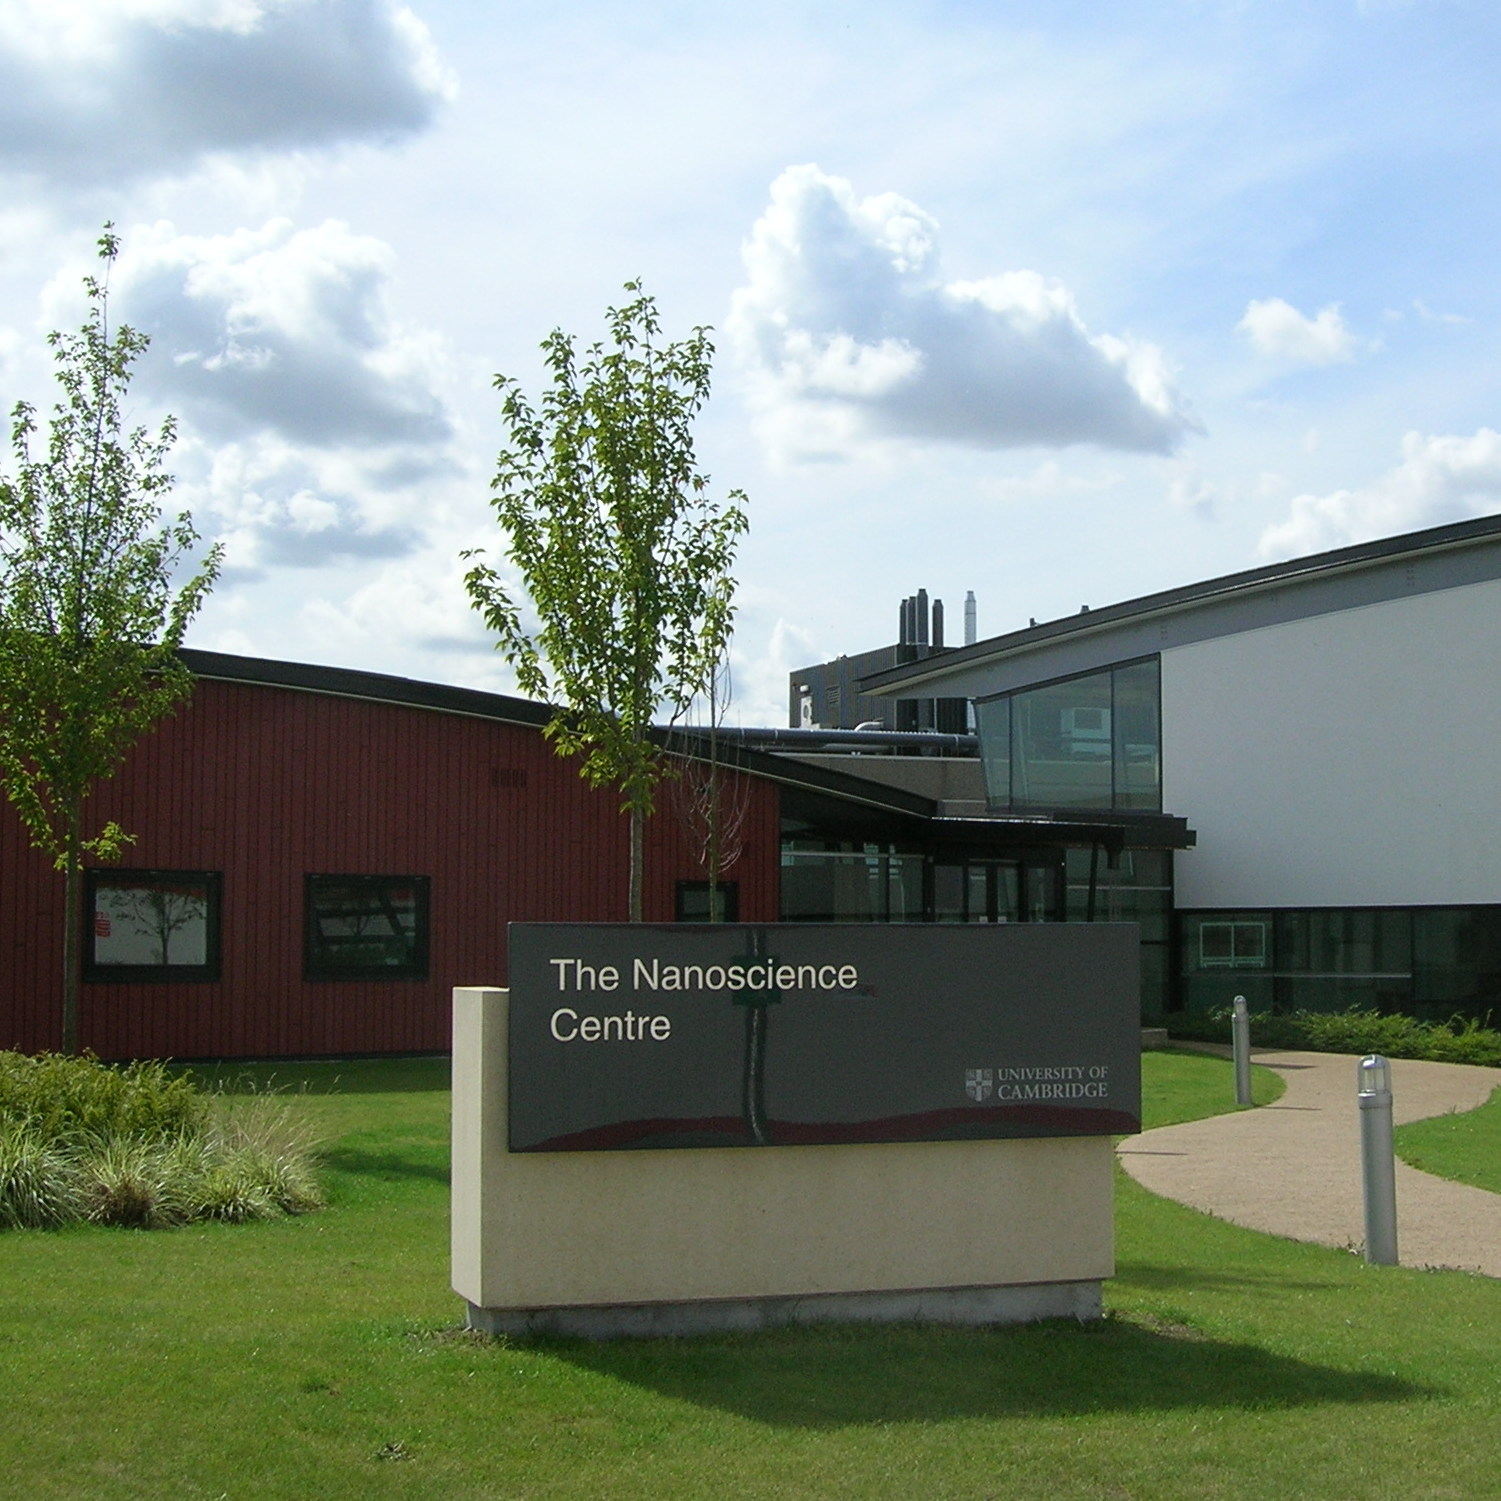 Nanoscience Centre - University of Cambridge